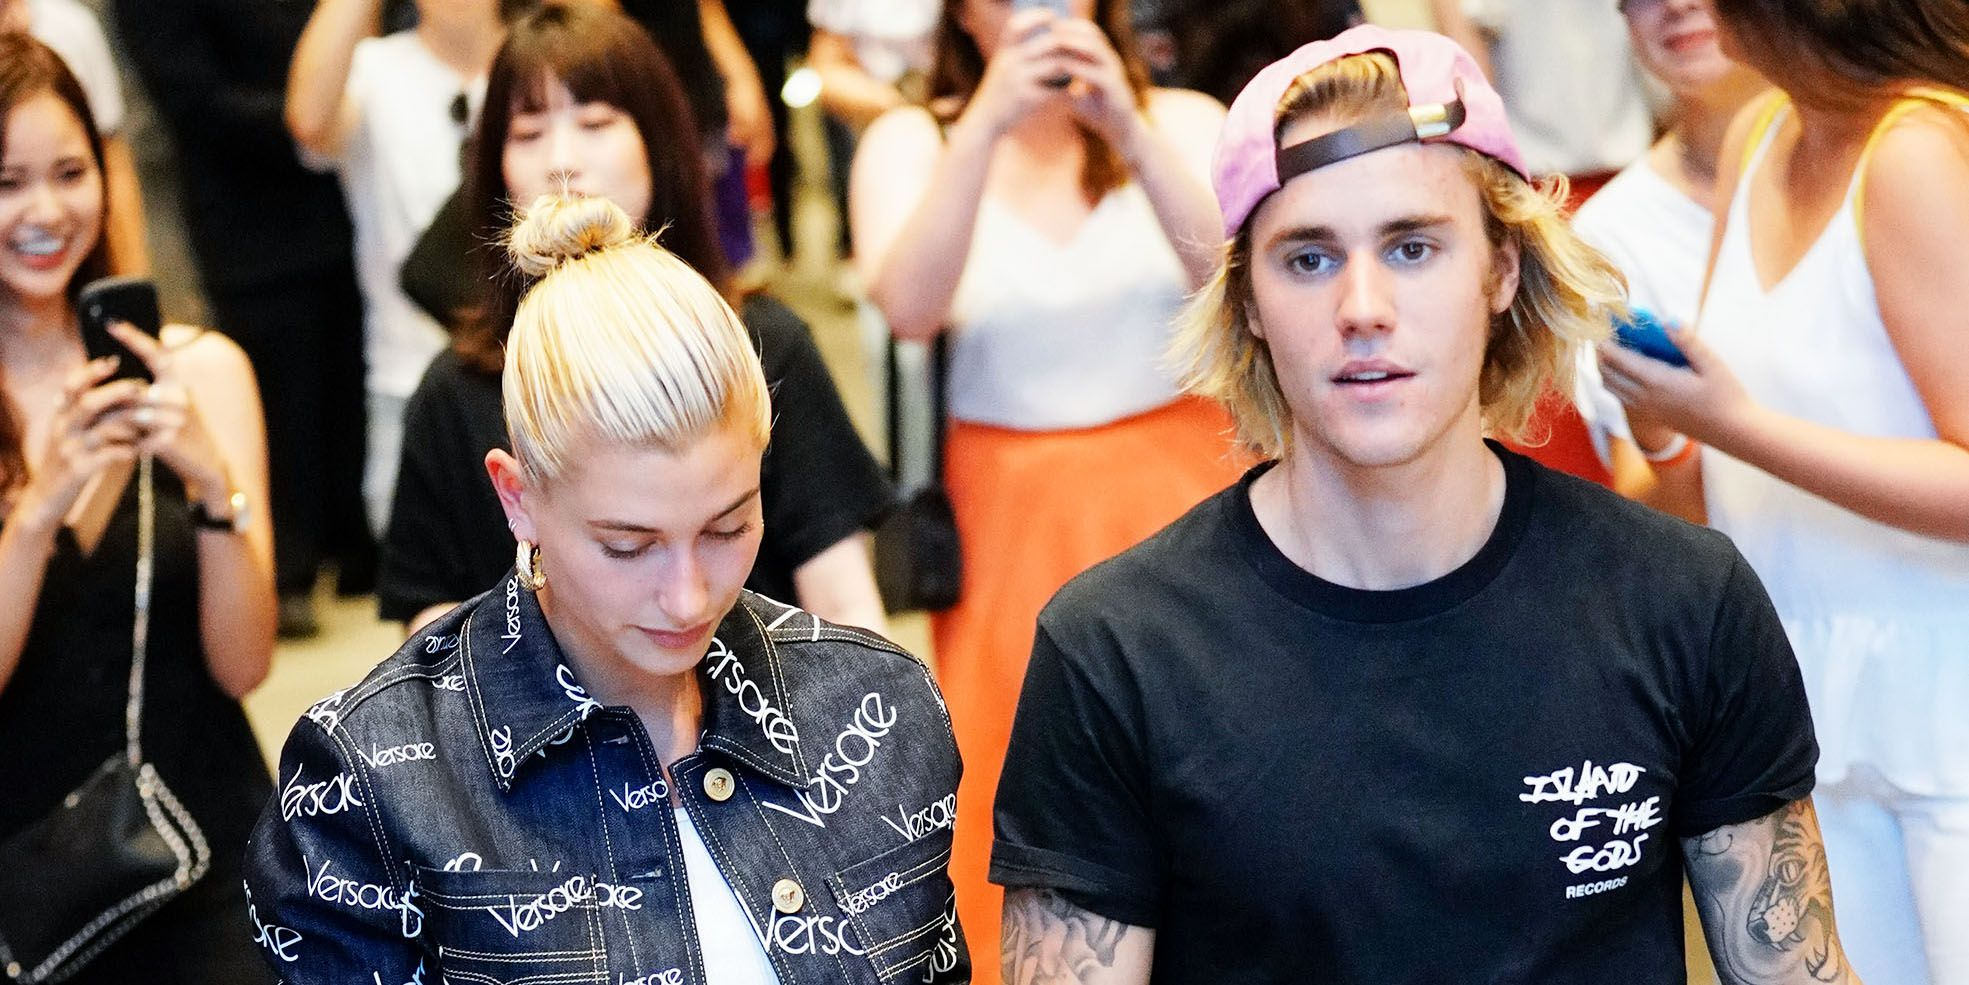 Who is justin bieber dating girlfriend wife